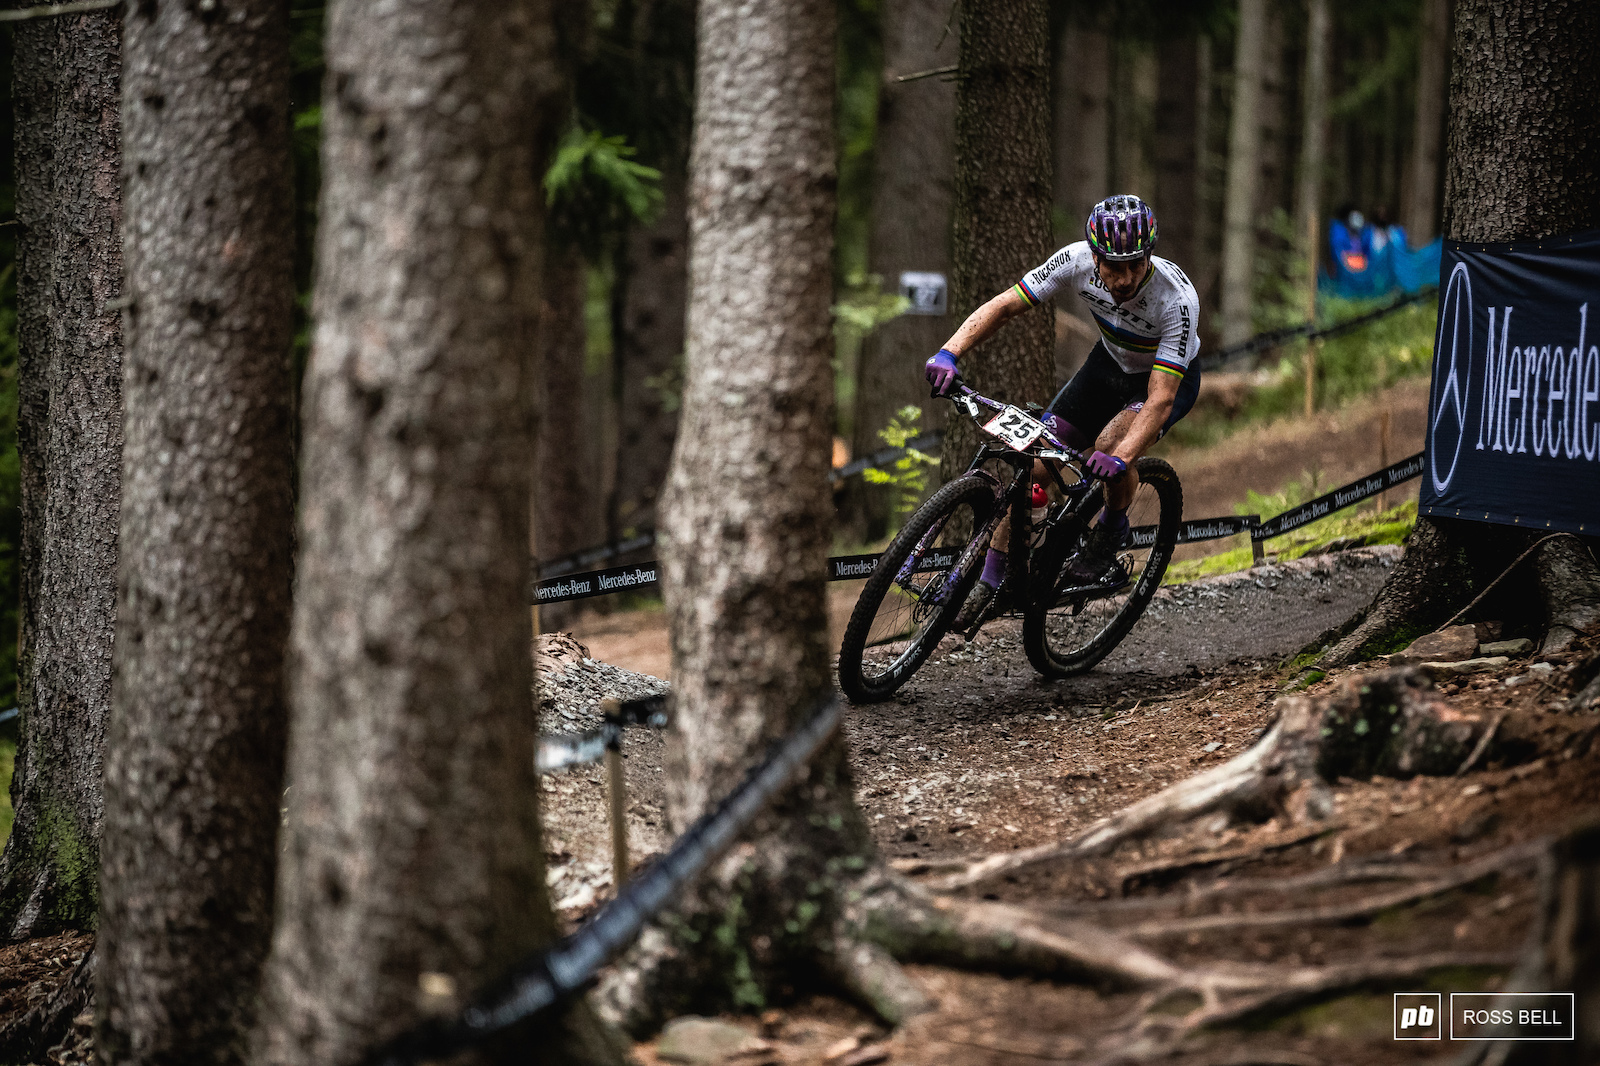 Nino Schurter was slow to get going but once he found his feet he was flying. He ll be confident for Sunday.